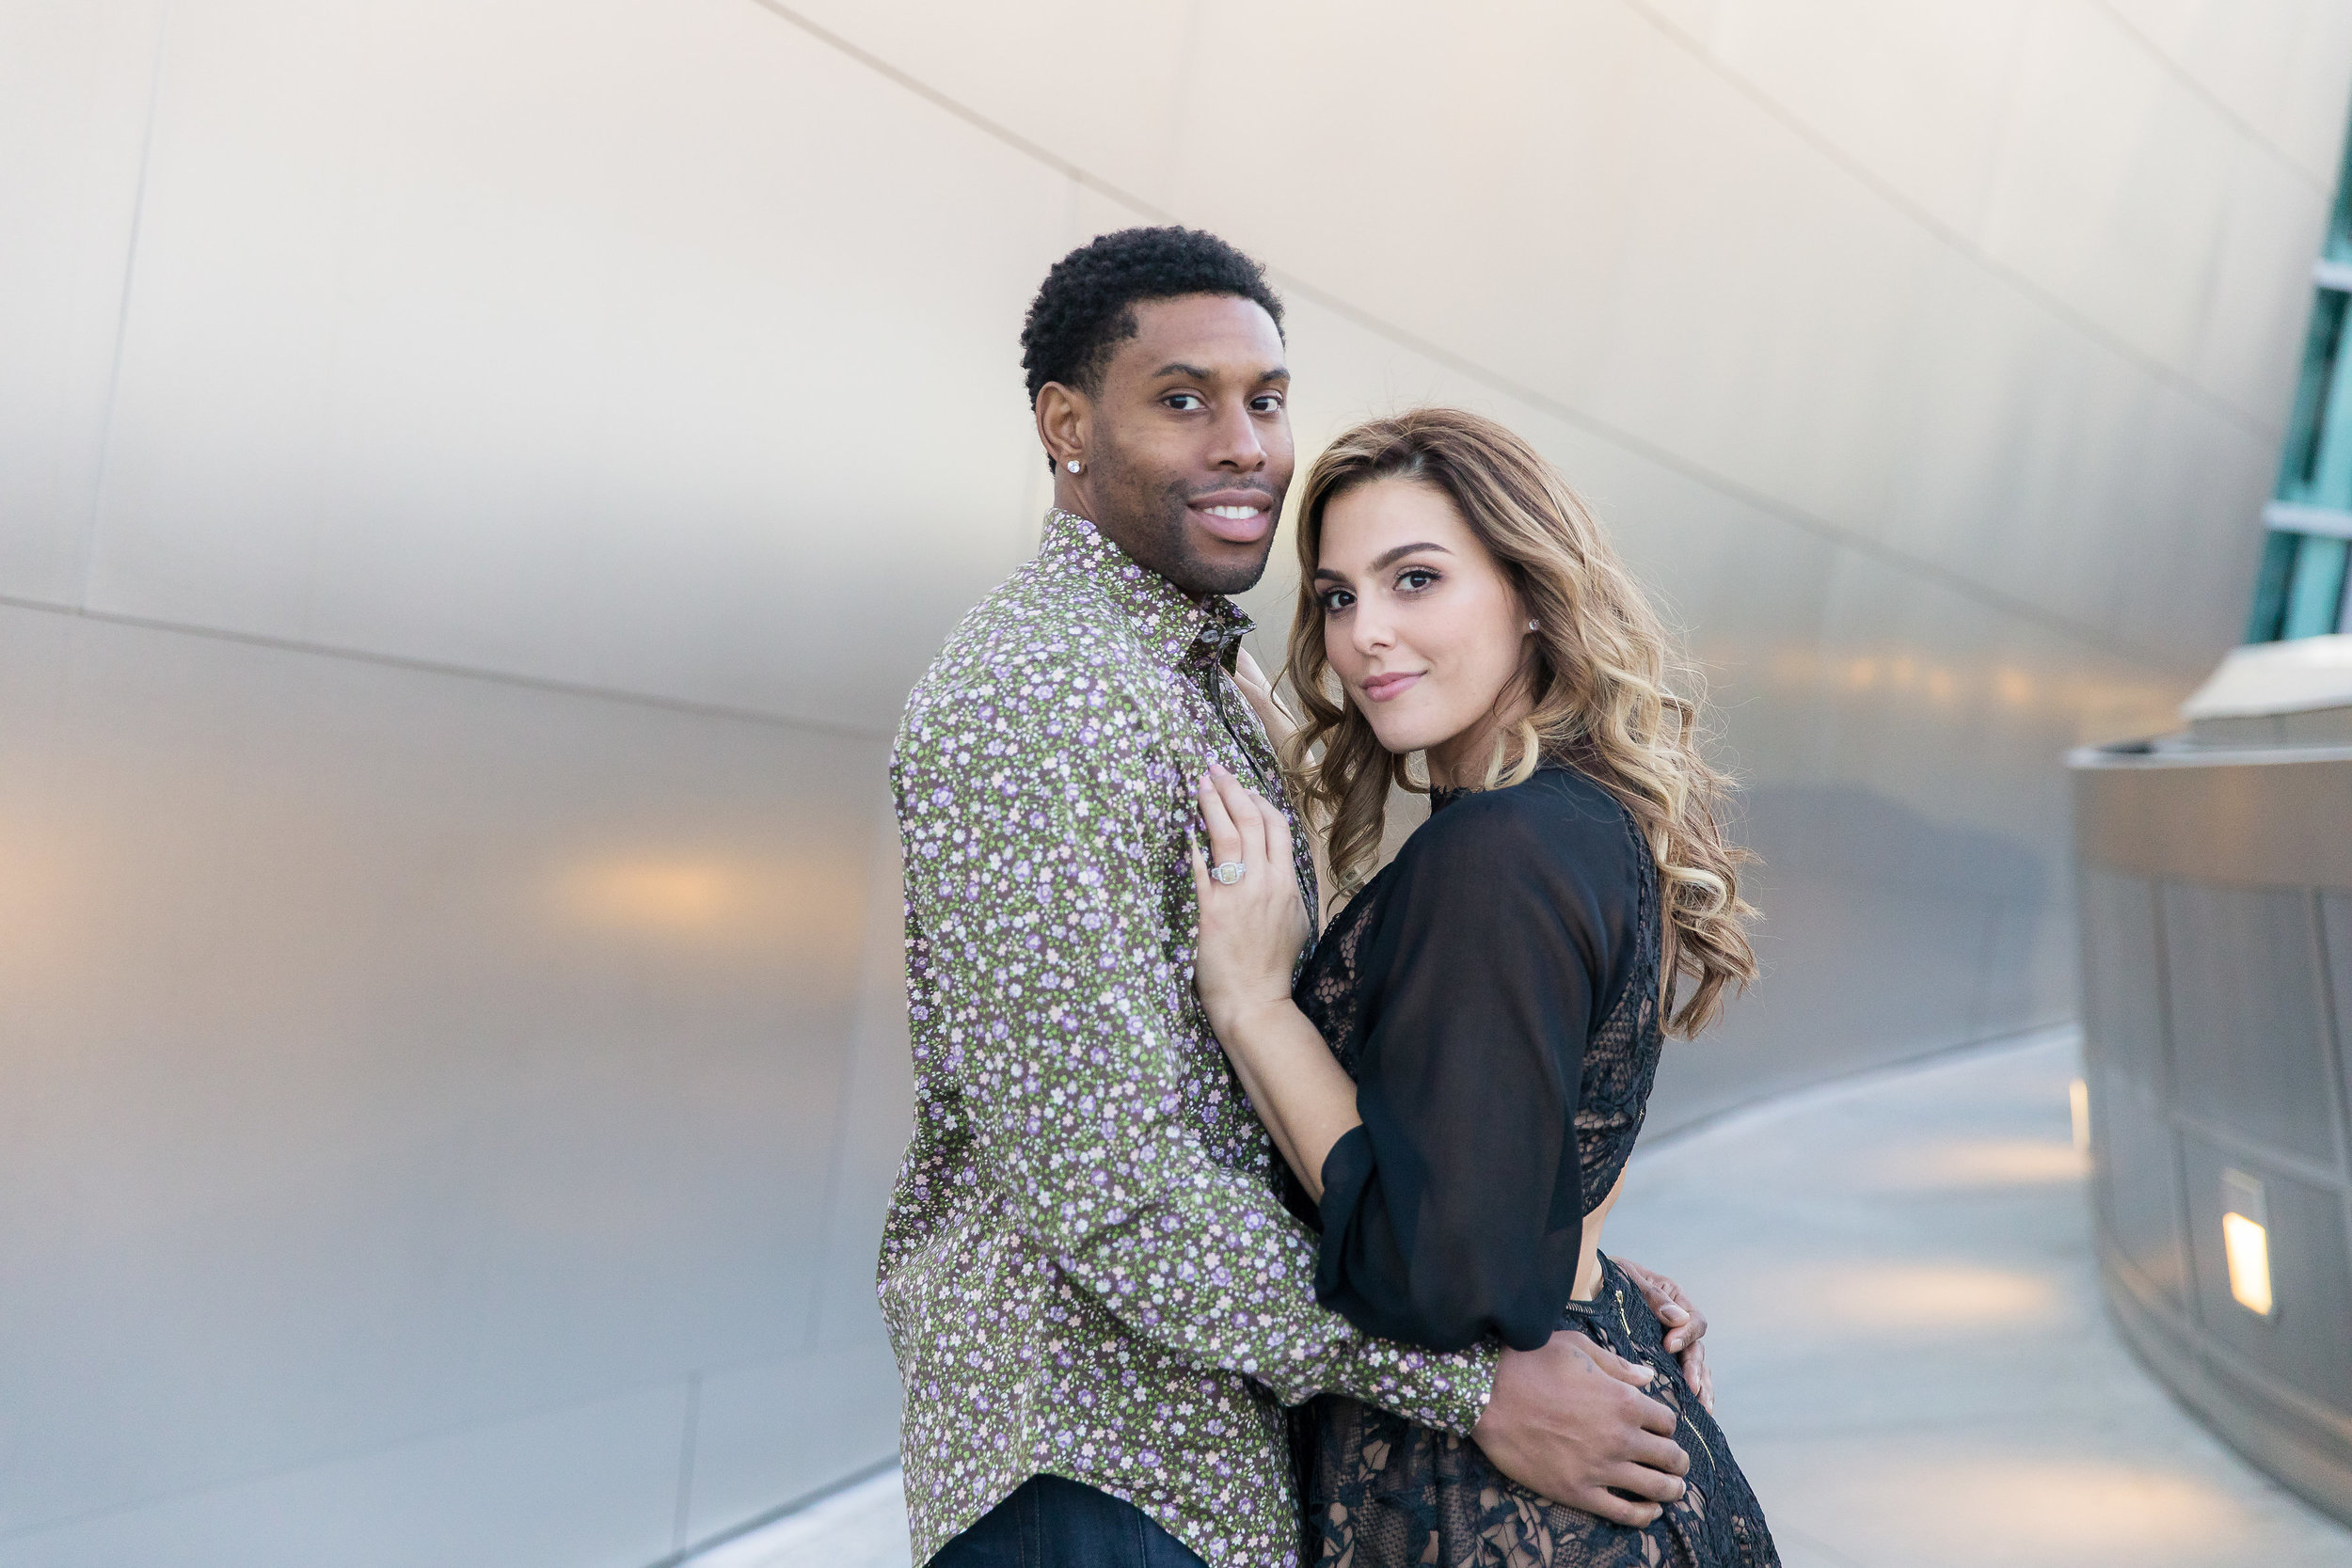 Danielle Ghaffari and CJ Watson. Engagement Photos in downtown LA. Luxury Wedding Planner Andrea Eppolito, with images by Brian Leahy.